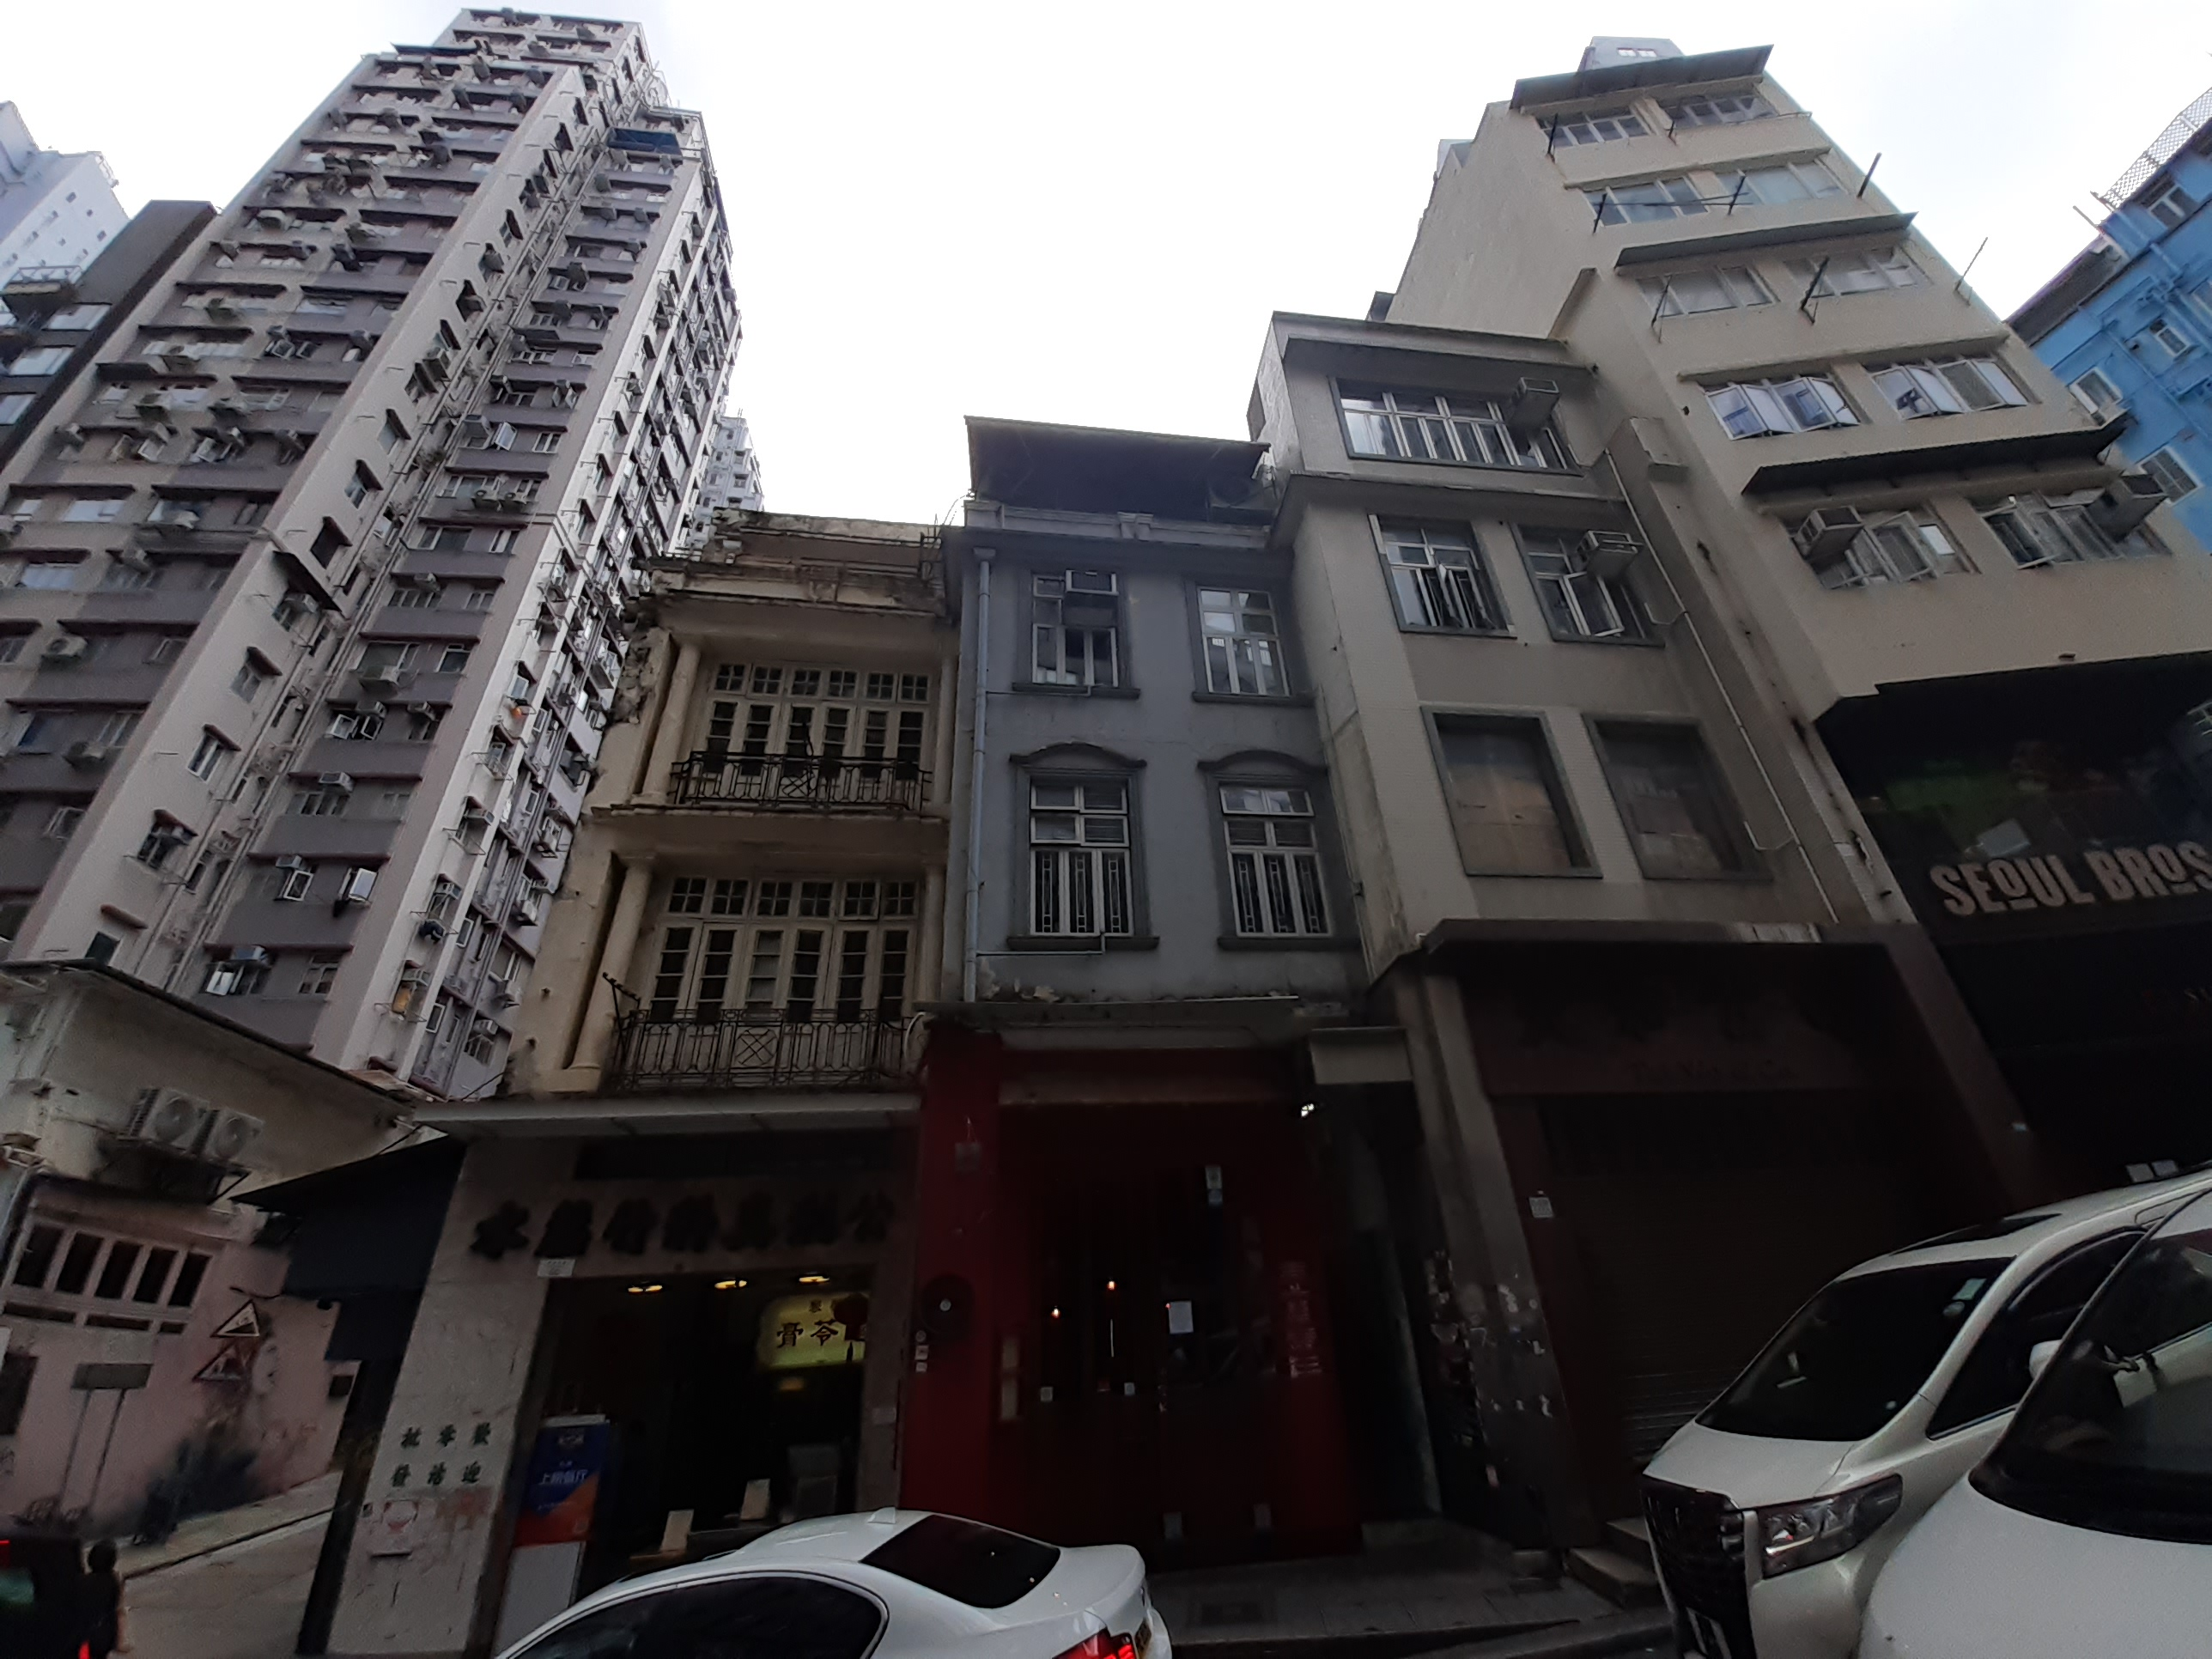 File Hk 中環 Central 荷李活道 Hollywood Road Old Shops Near Peel Street May 2020 Ss2 06 Jpg Wikimedia Commons